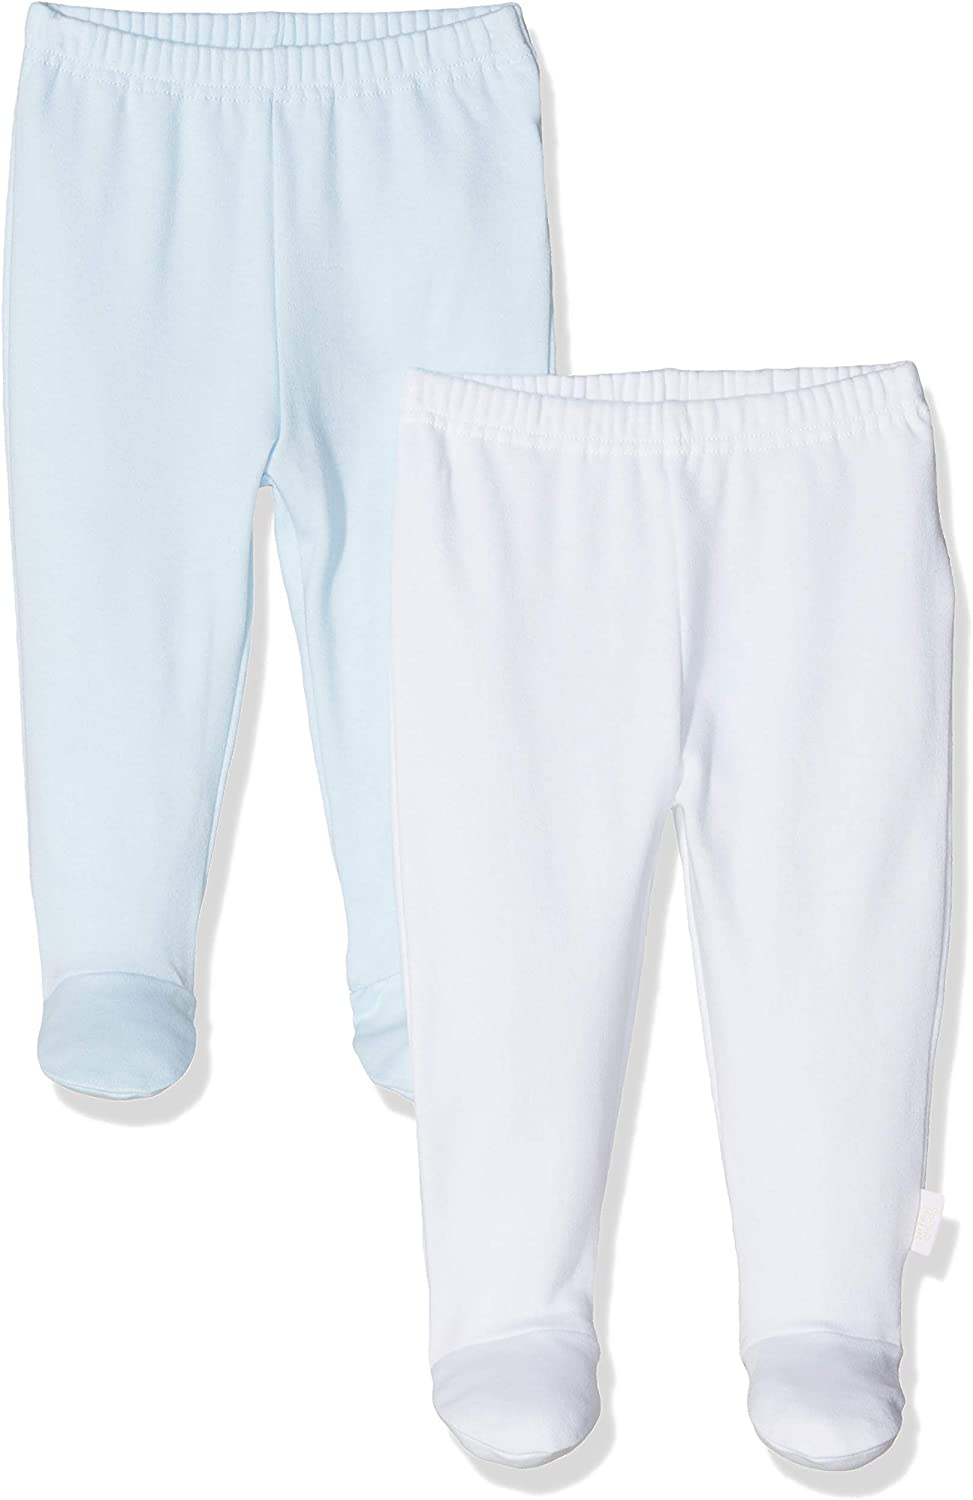 chicco Baby Trousers Pack of 2